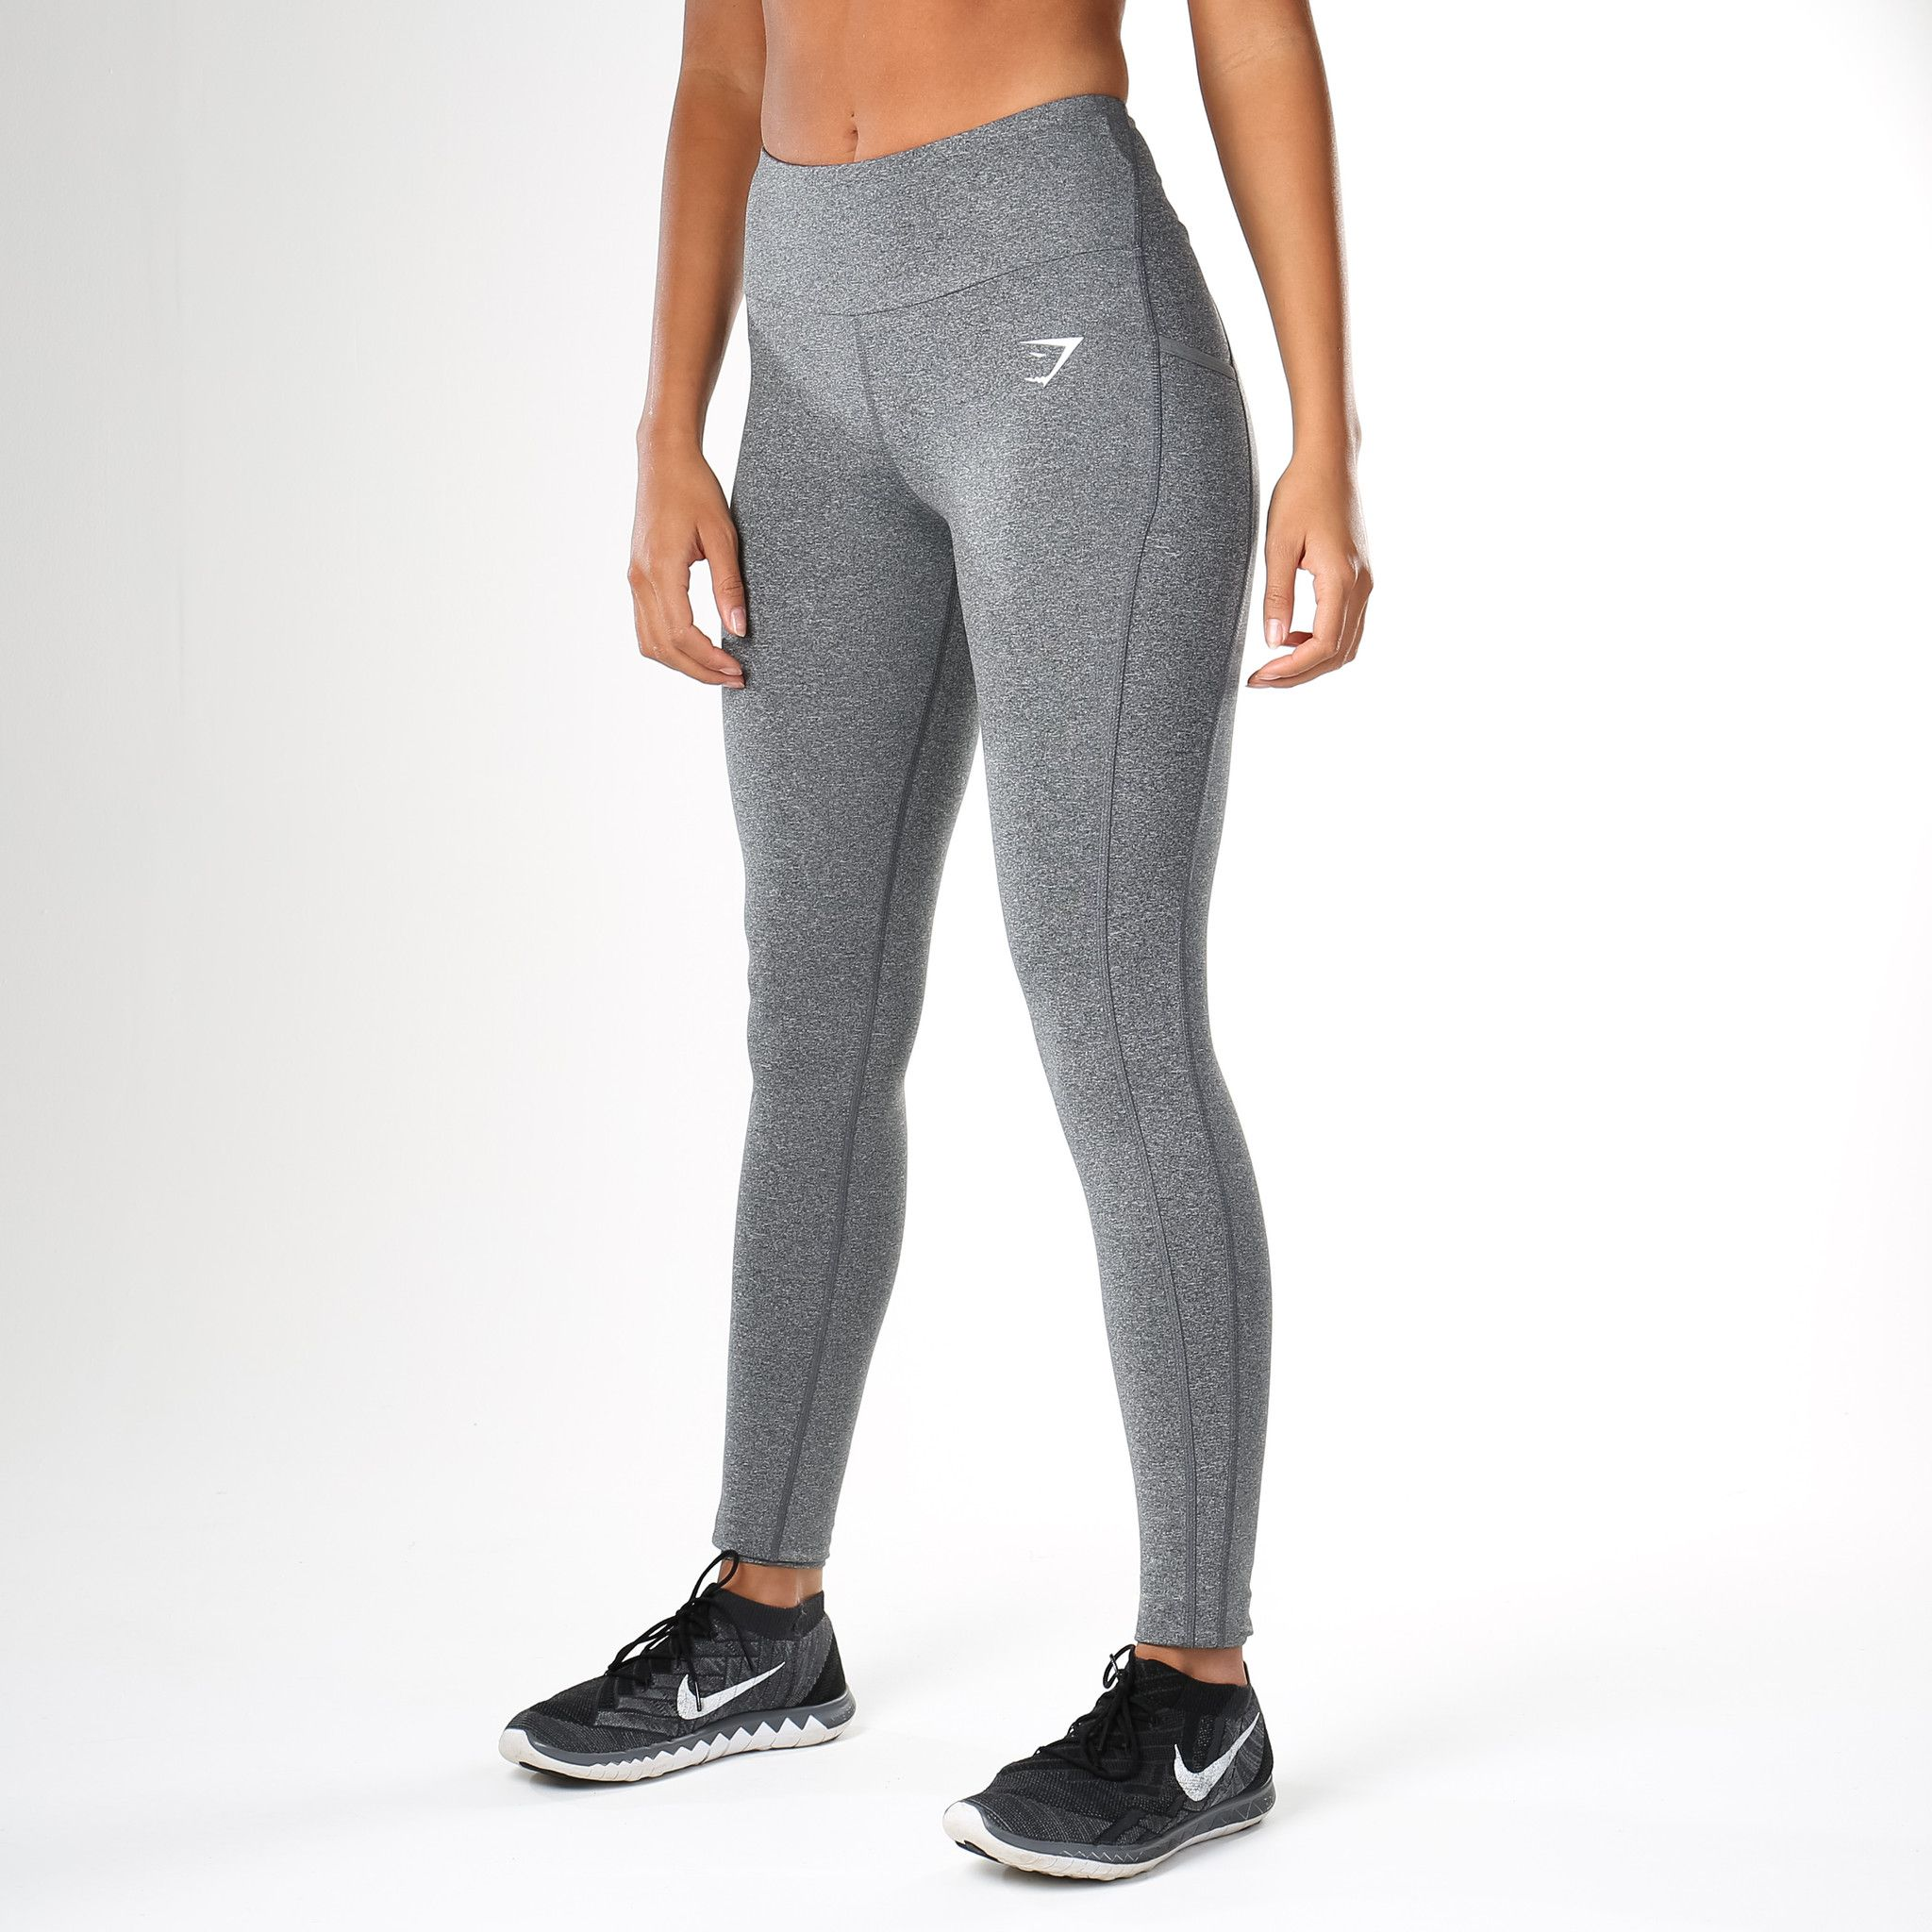 87408a7cc0 Gymshark DRY Sculpture Leggings - Charcoal Marl | ATHLETIC FASHION ...